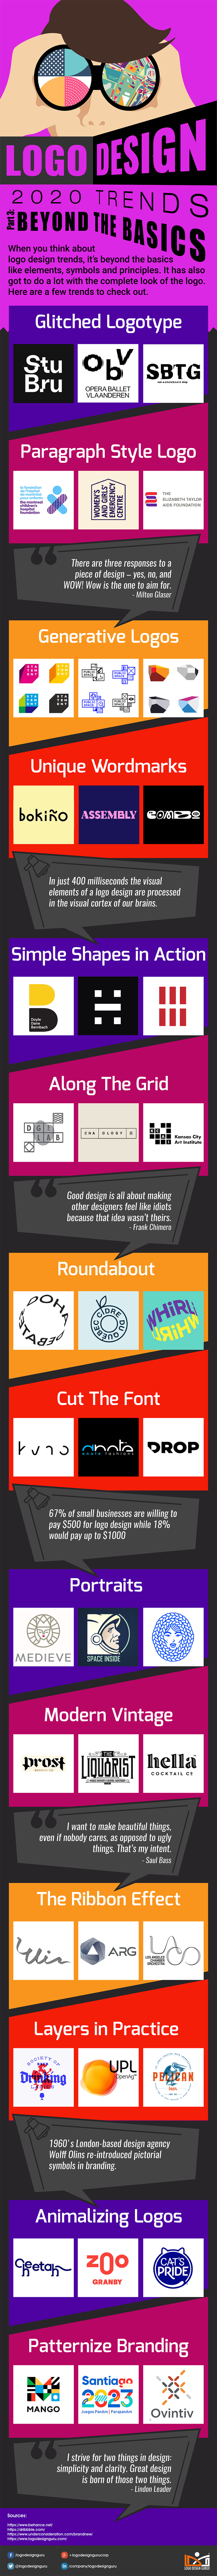 Top Logo Design Trends For 2020 - Beyond the basics